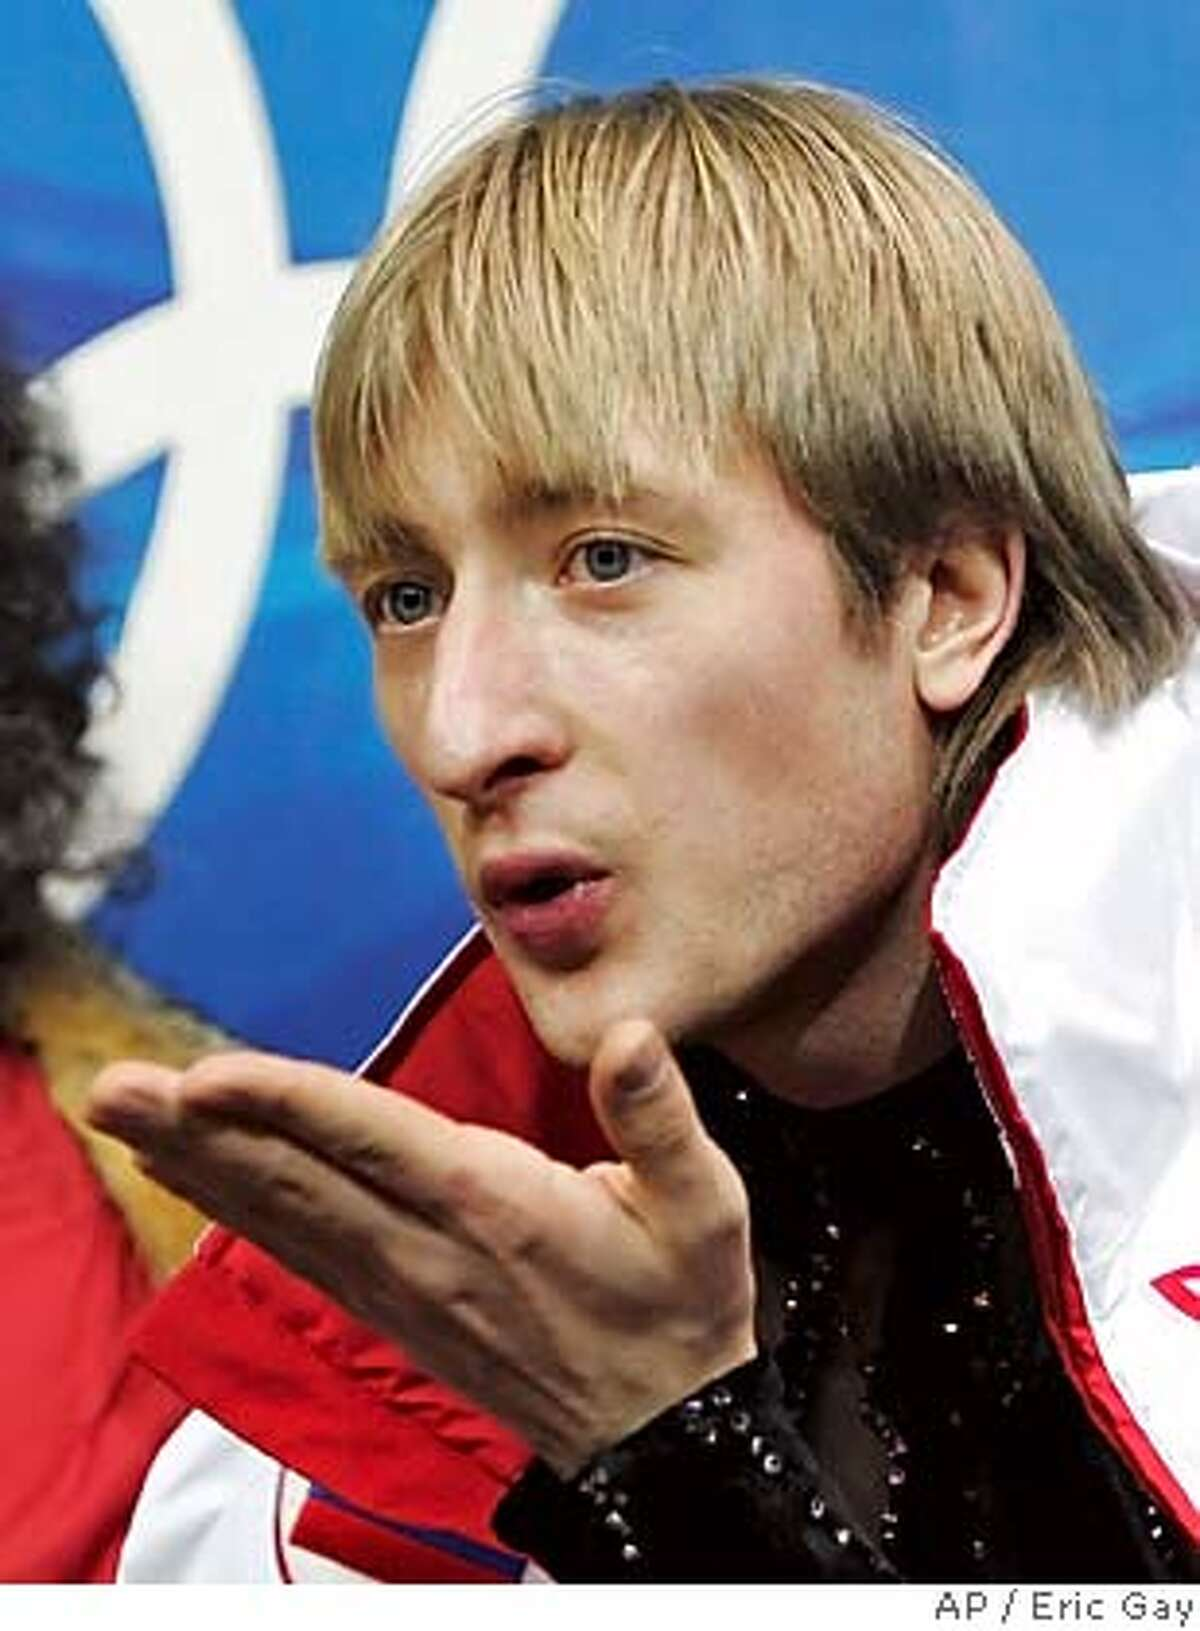 Russia's Evgeni Plushenko after his performance in the Men's Figure Skating short program at the Turin 2006 Winter Olympic Games in Turin, Italy, Tuesday, Feb. 15, 2006. (AP Photo/Eric Gay)